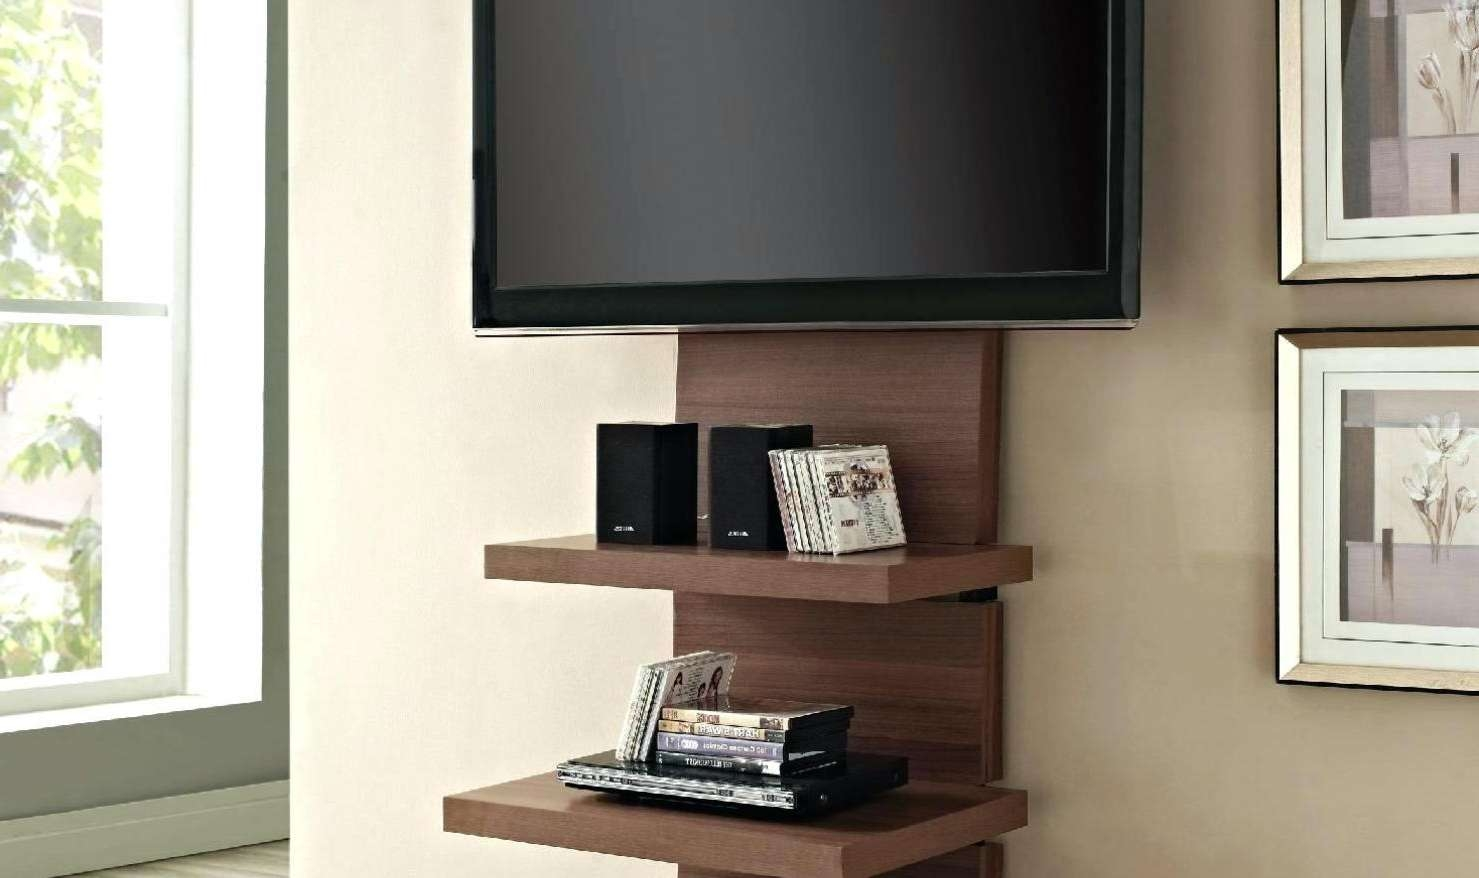 Cabinet : Ikea Tv Cabinet Ideas Hypnotizing Ikea Tv Stands Ideas Pertaining To Wall Mounted Tv Cabinets Ikea (View 19 of 20)